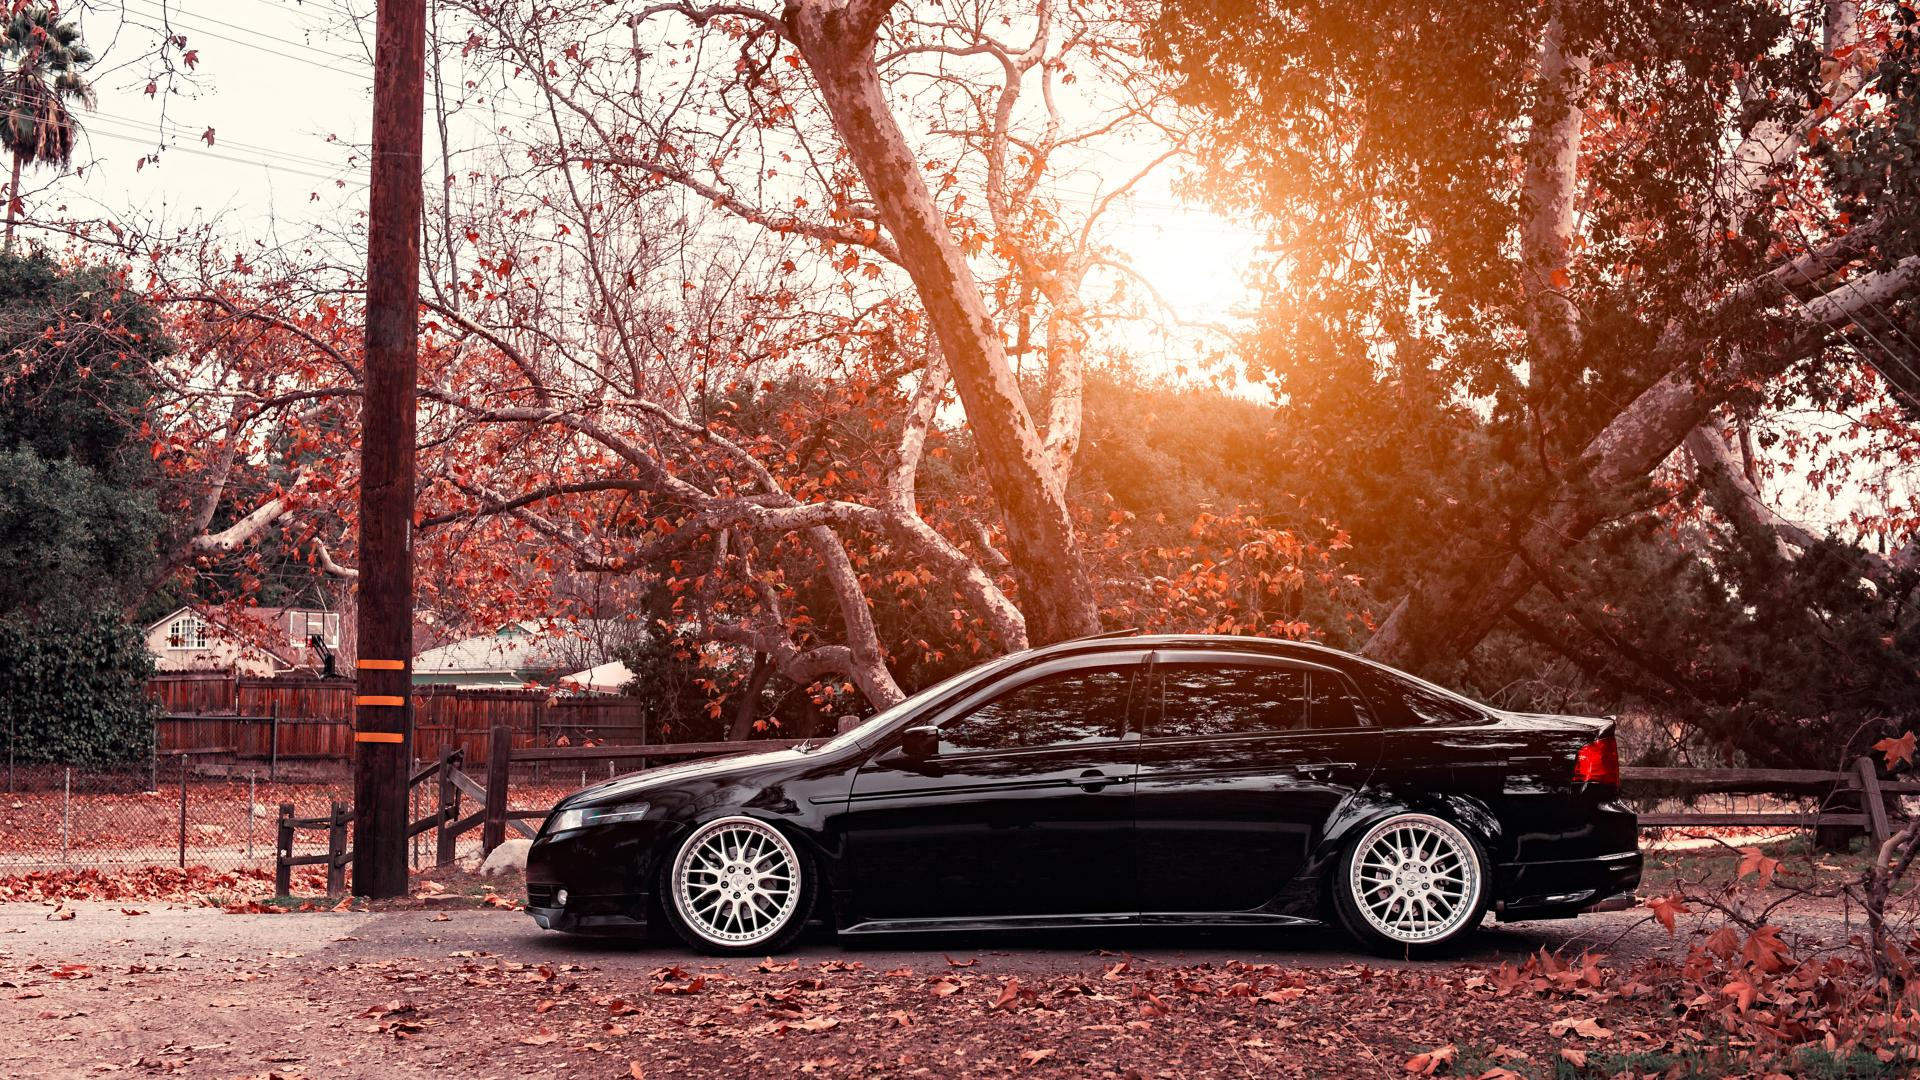 1920x1080 - Acura TSX Wallpapers 29